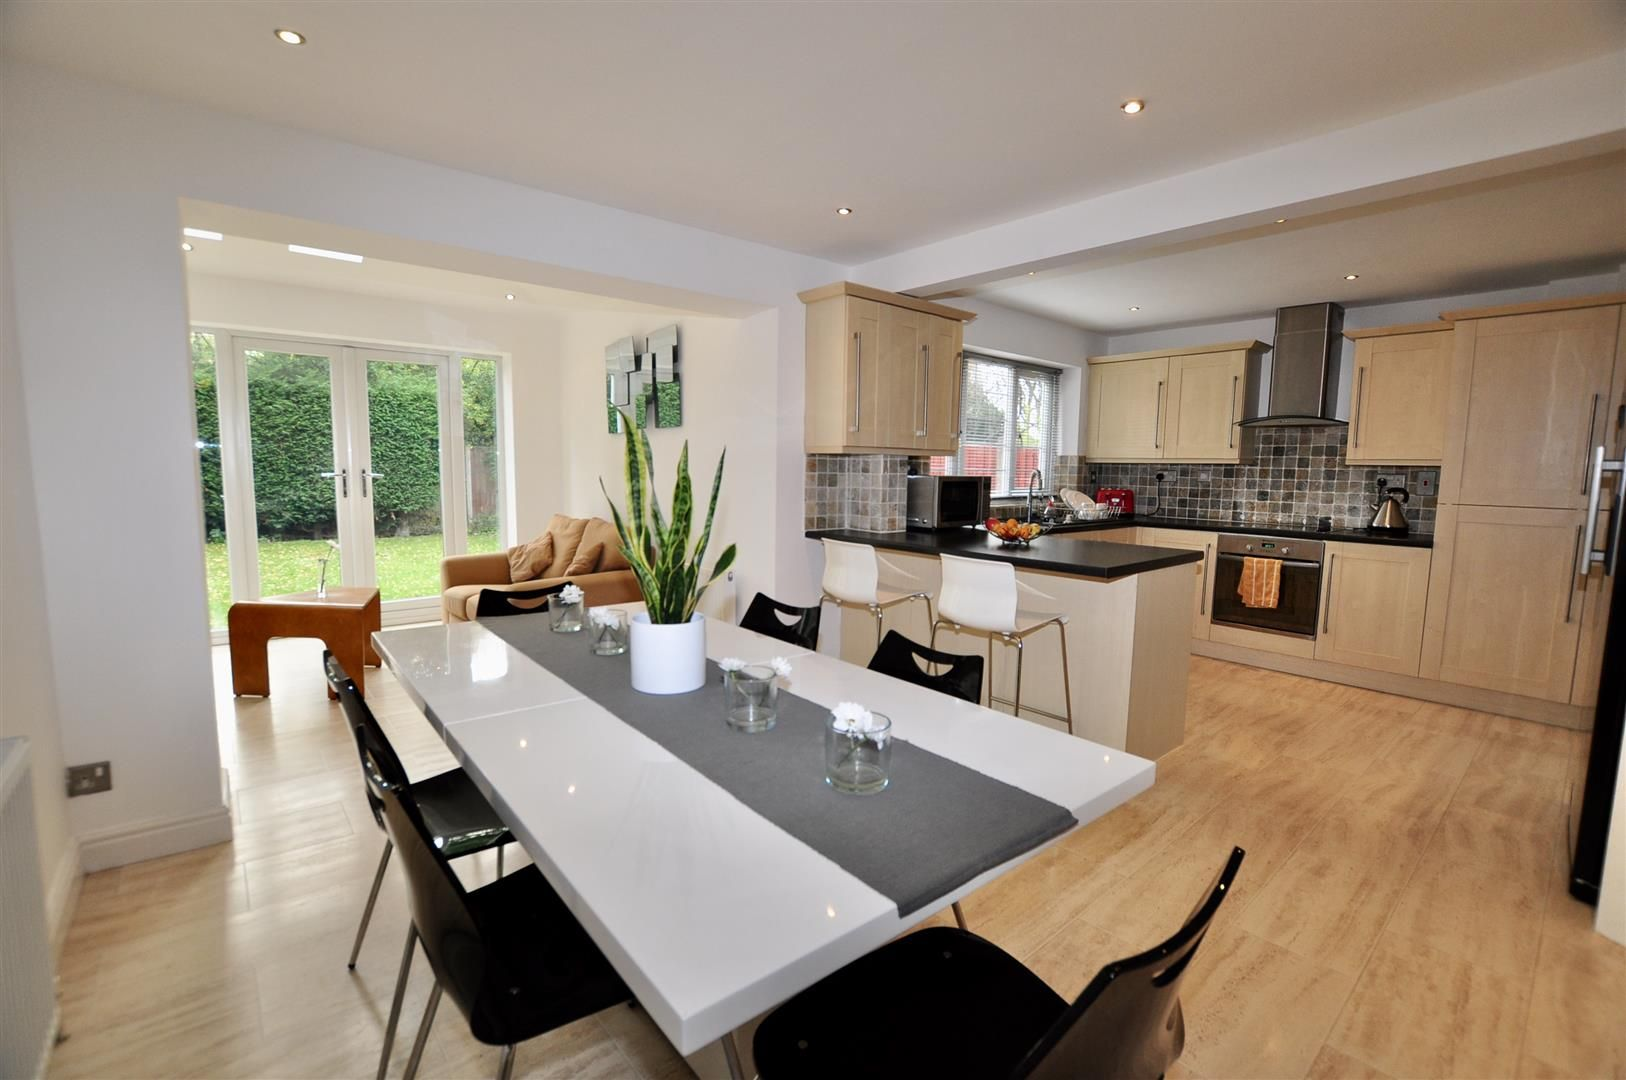 4 bed house for sale in Hagley 6